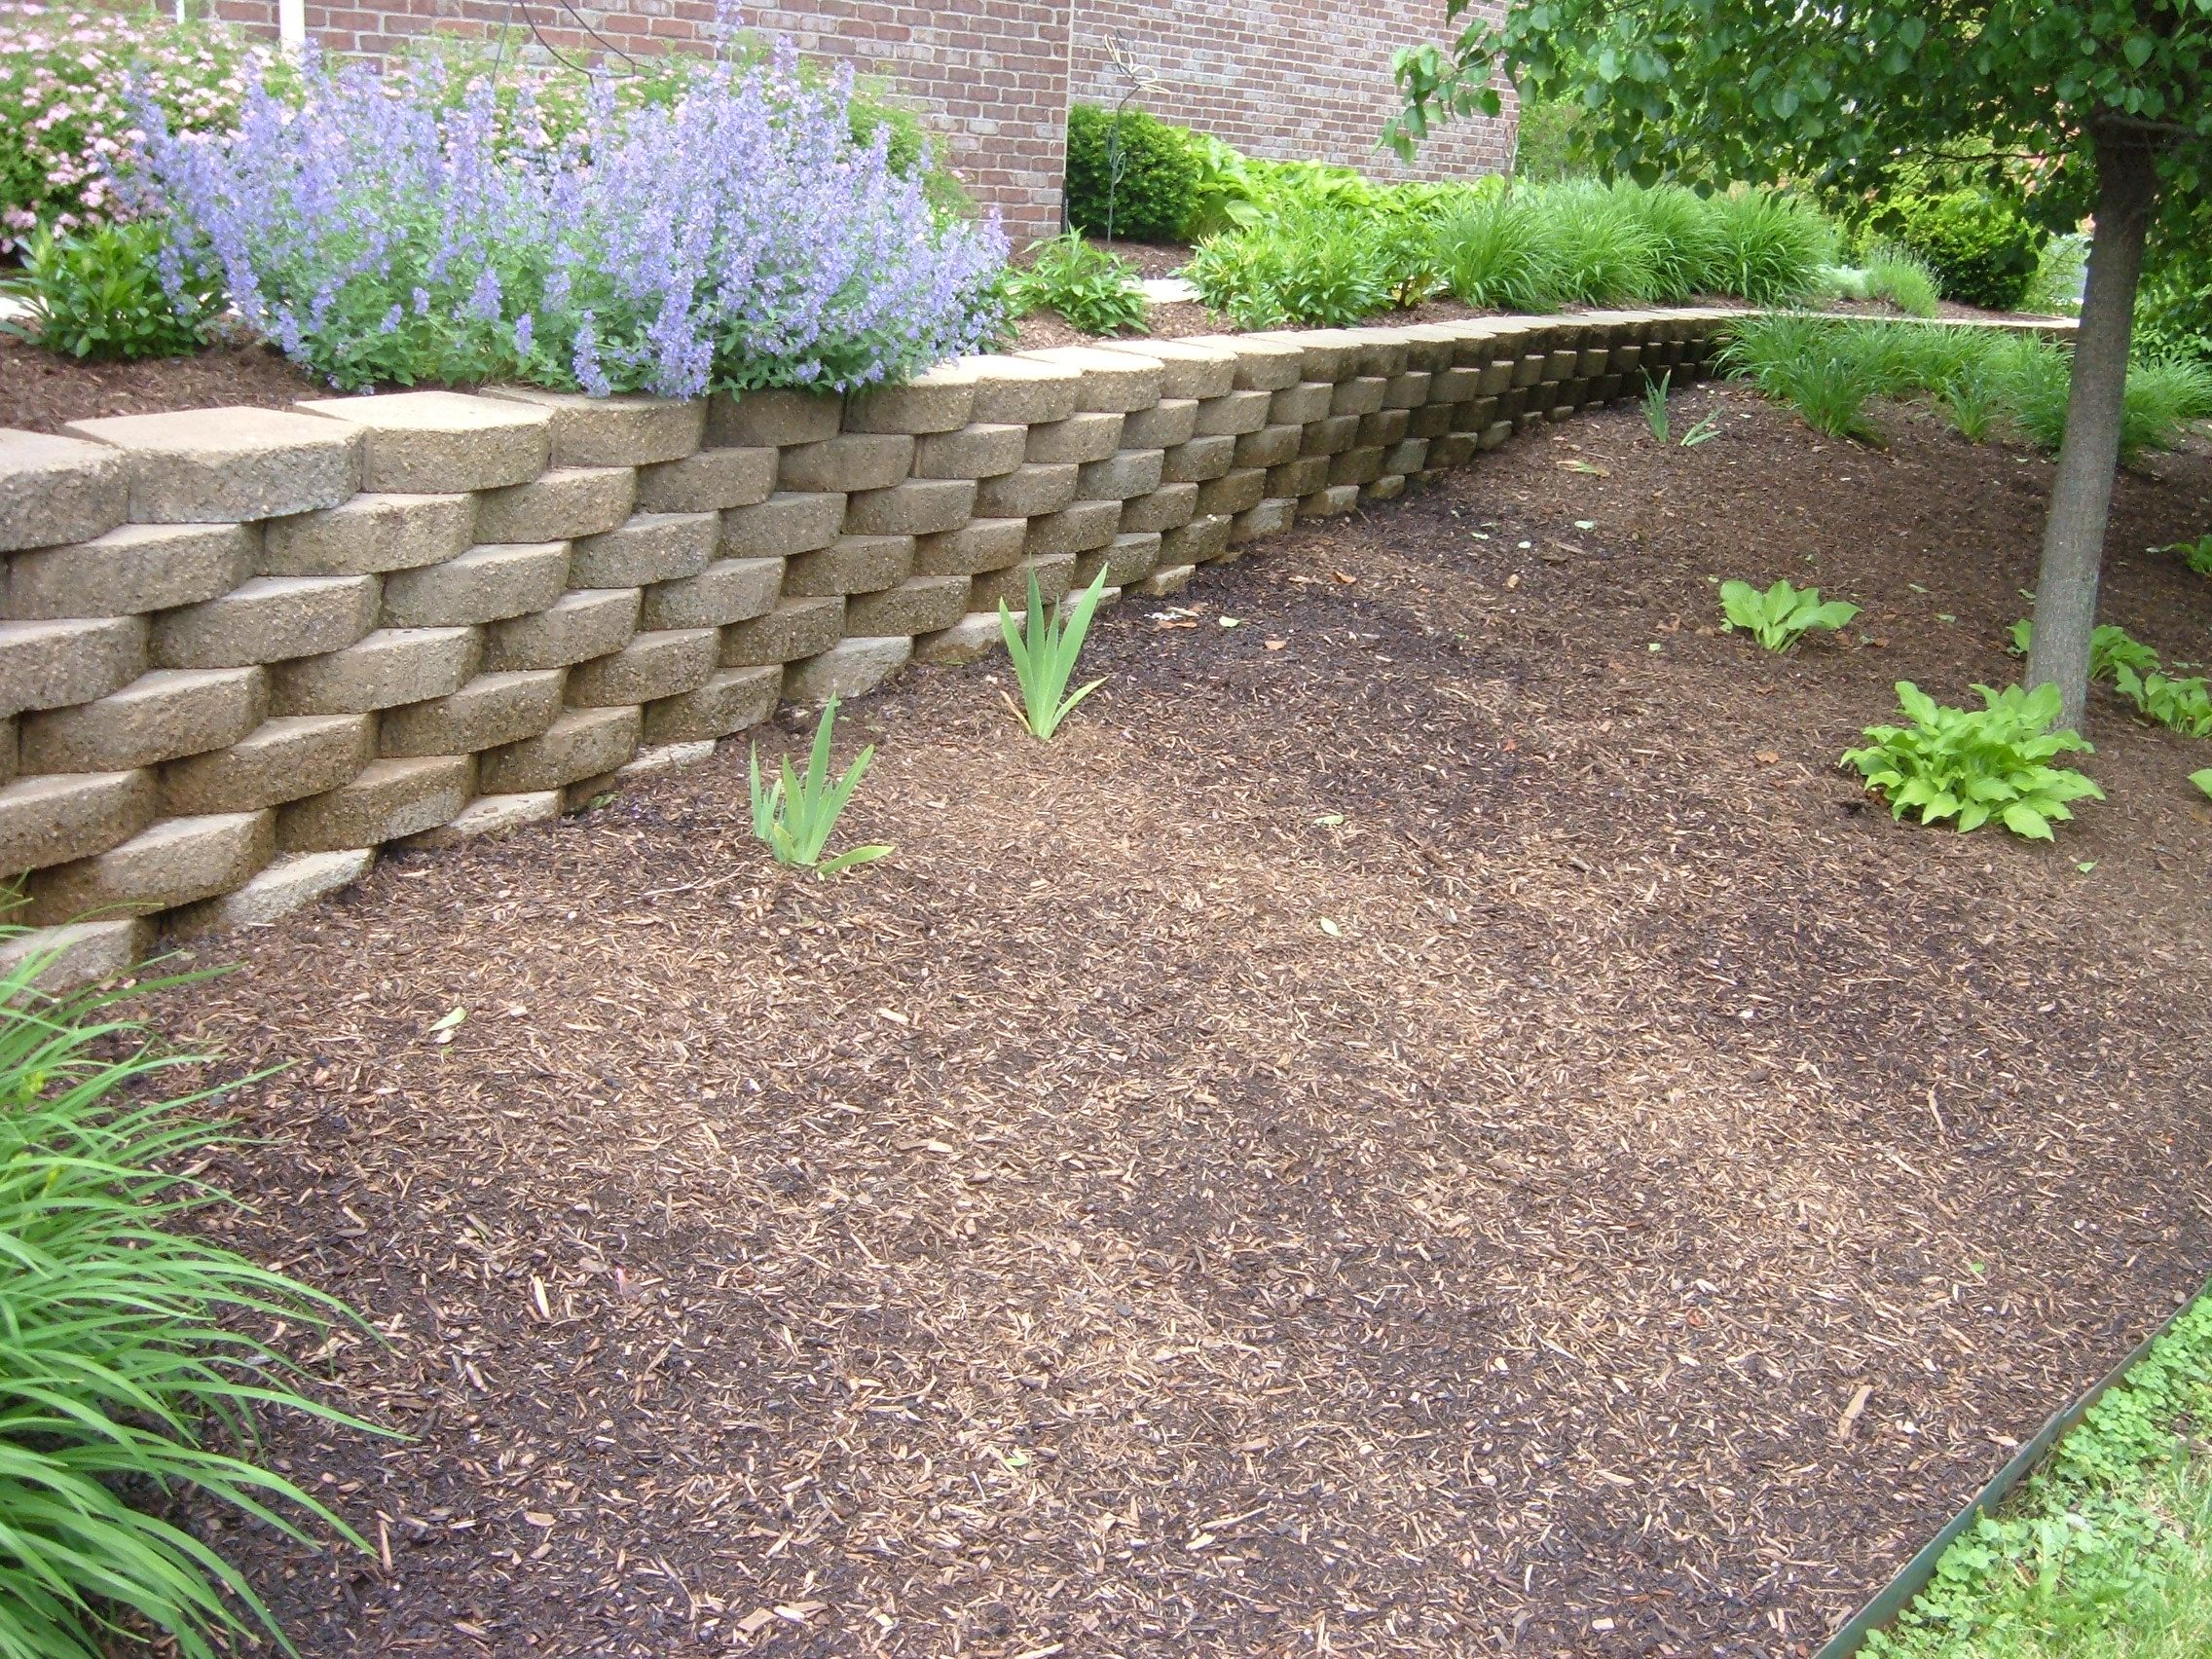 retaining walls   Retaining Walls   Cut Above The Rest Lawn Care ...